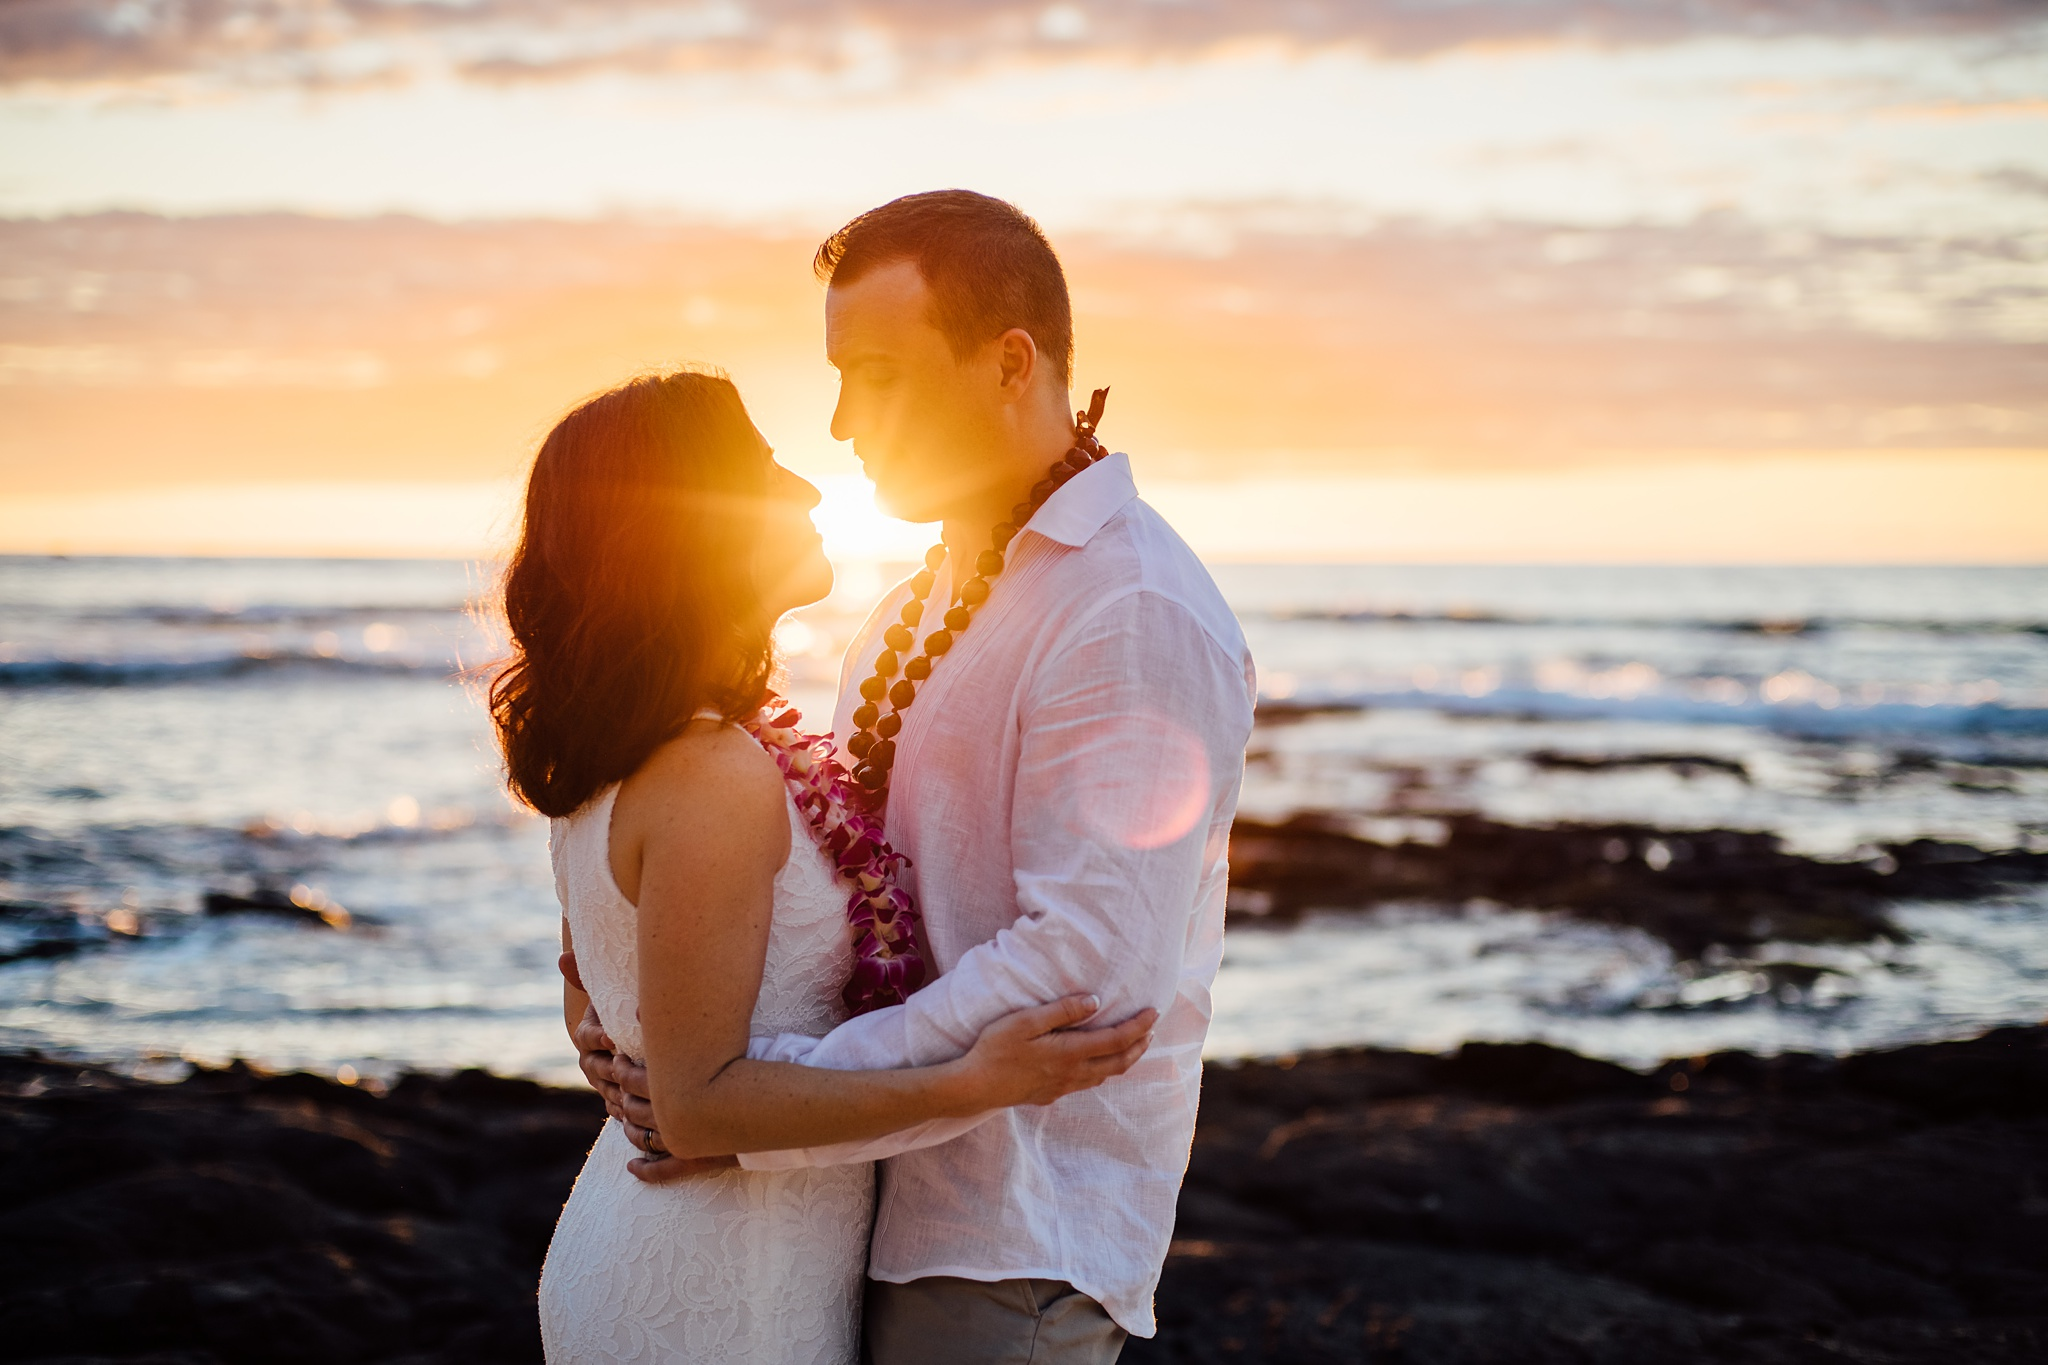 Sunset Flare on Kikaua Beach